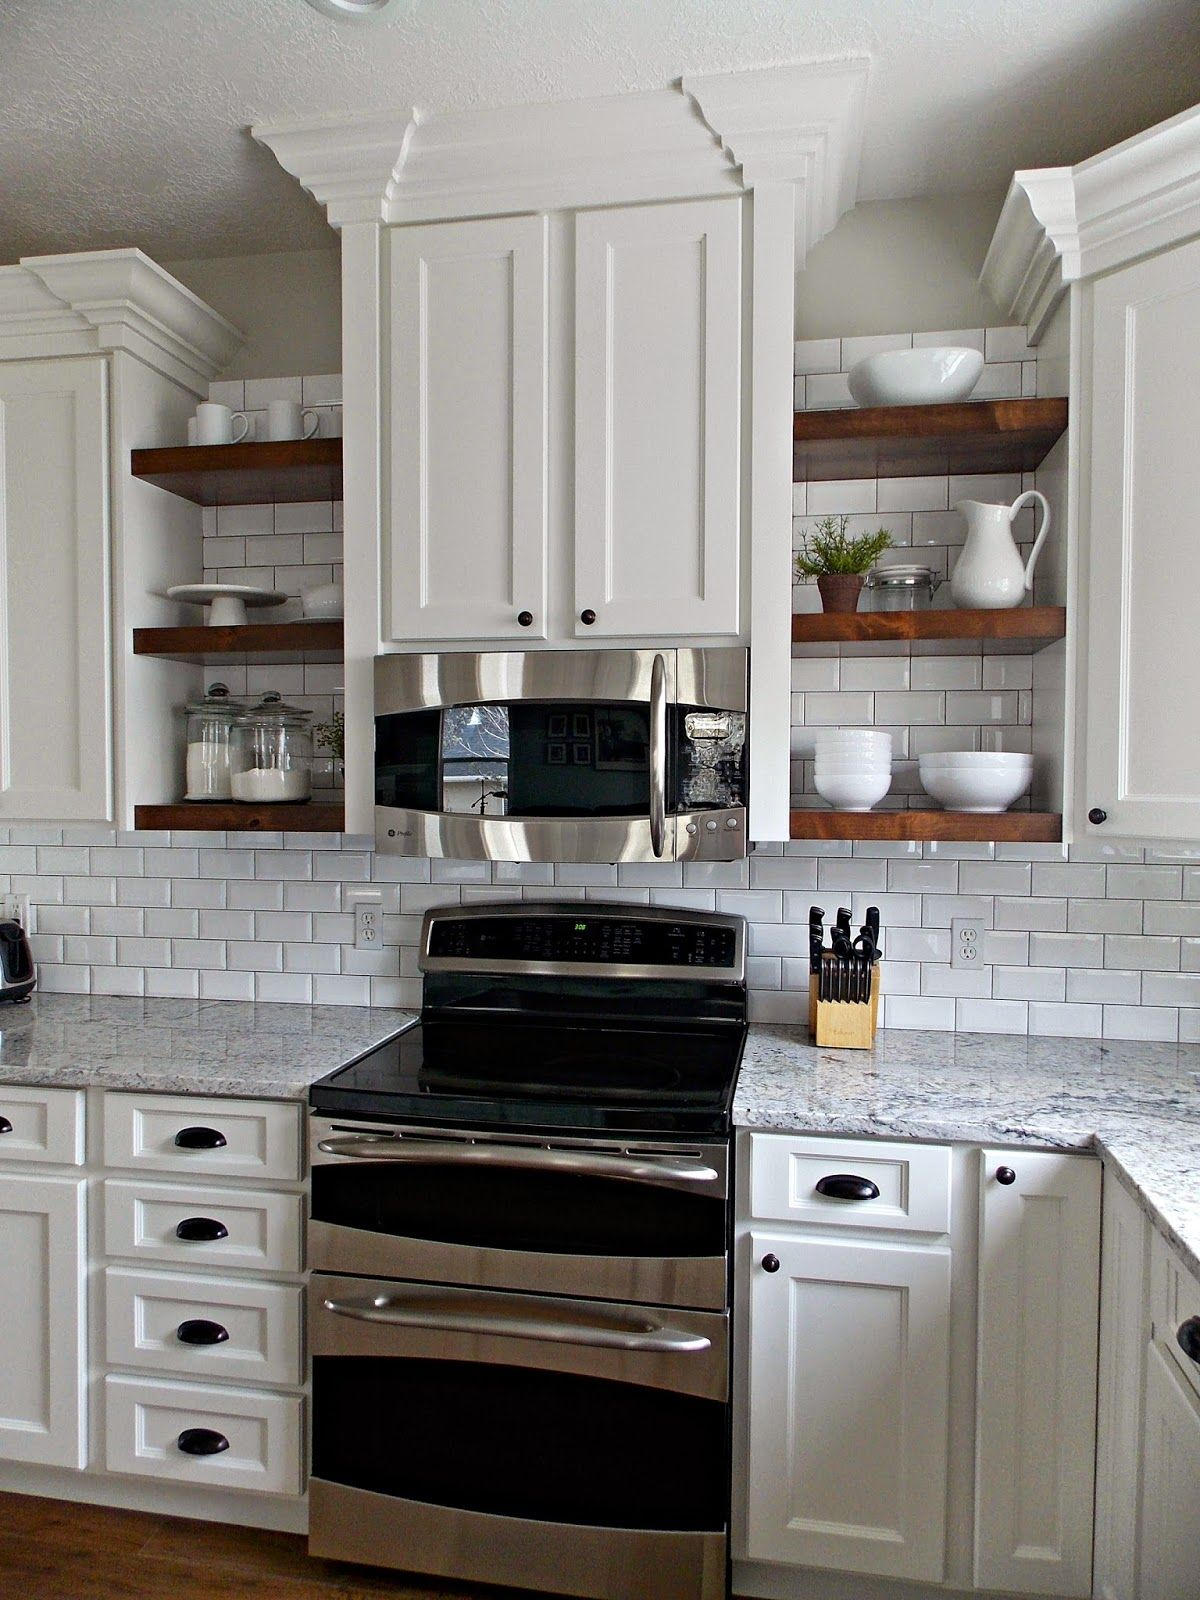 kitchen cabinets open tda decorating and design kitchen before during amp after 3141